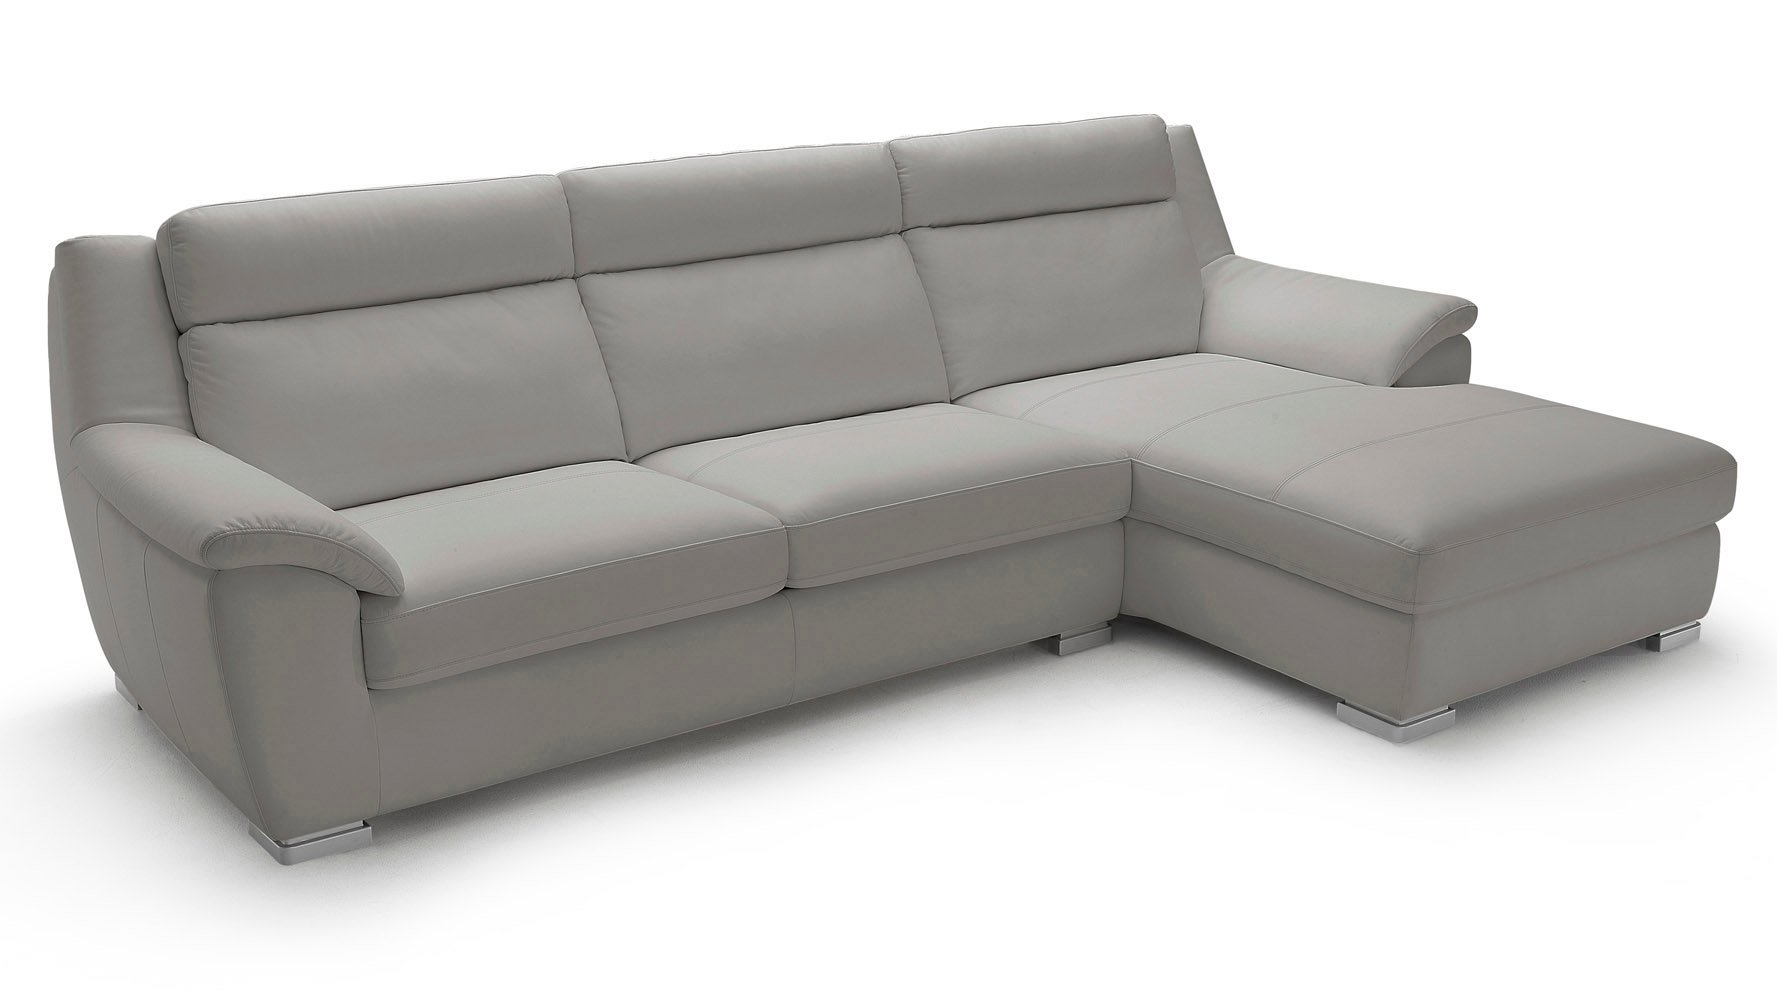 Manor Sleeper Sectional. Zuri Furniture   Contemporary Furniture   Modern Furniture